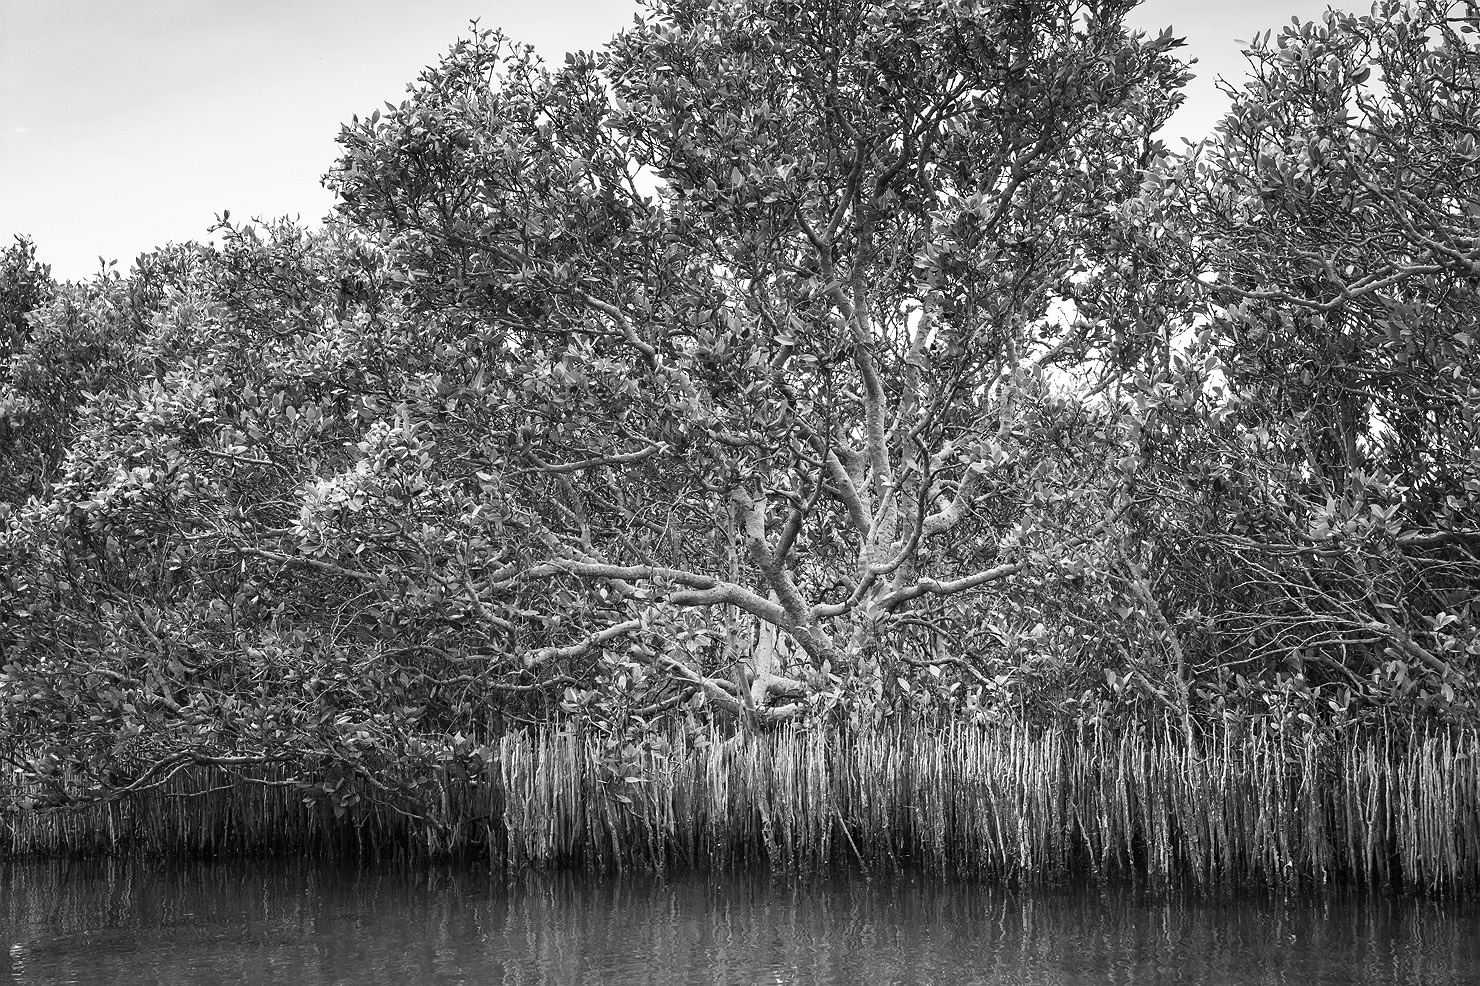 Mangroves of Bunbury